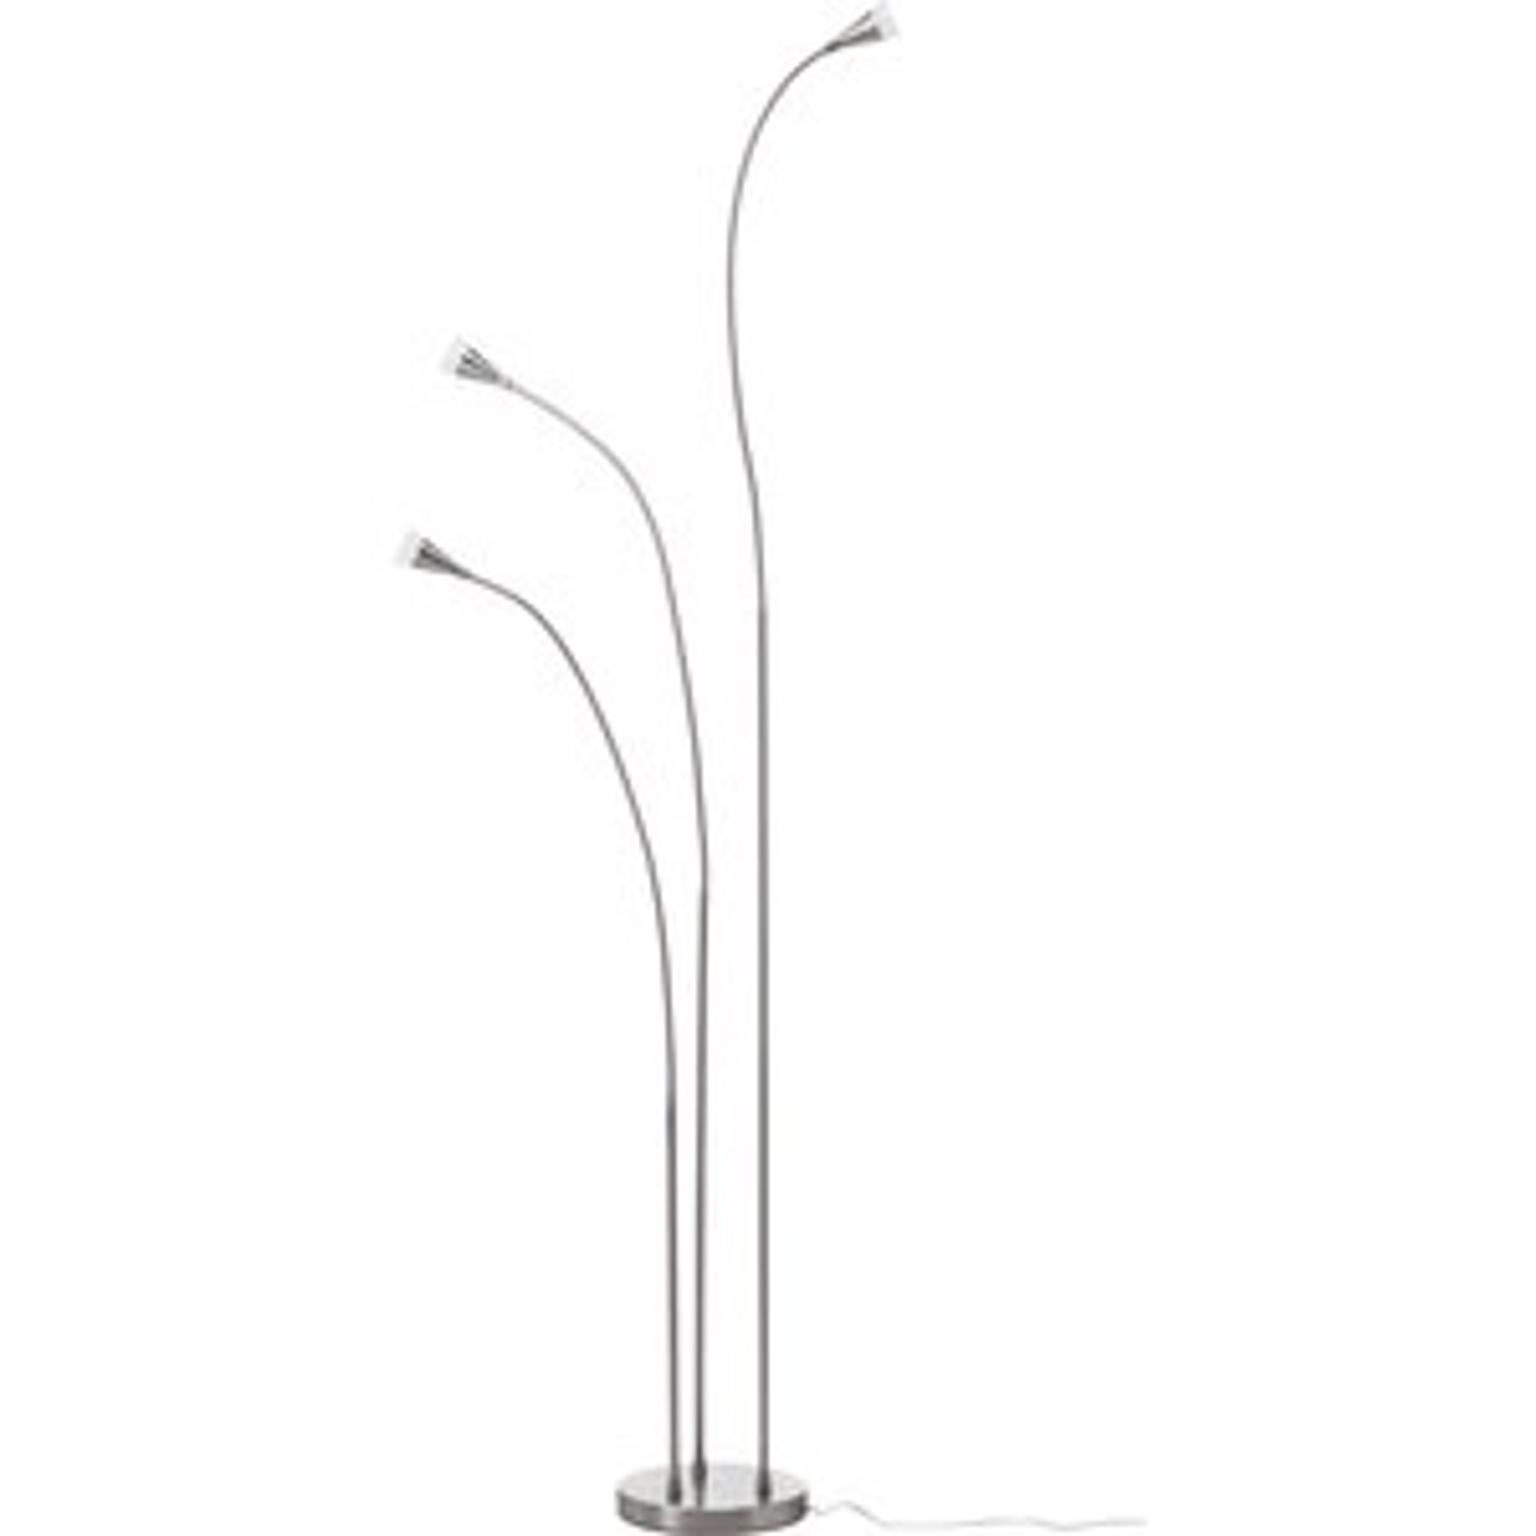 Ikea Tived Led Standleuchte Stehlampe In 13088 Berlin Fur 60 00